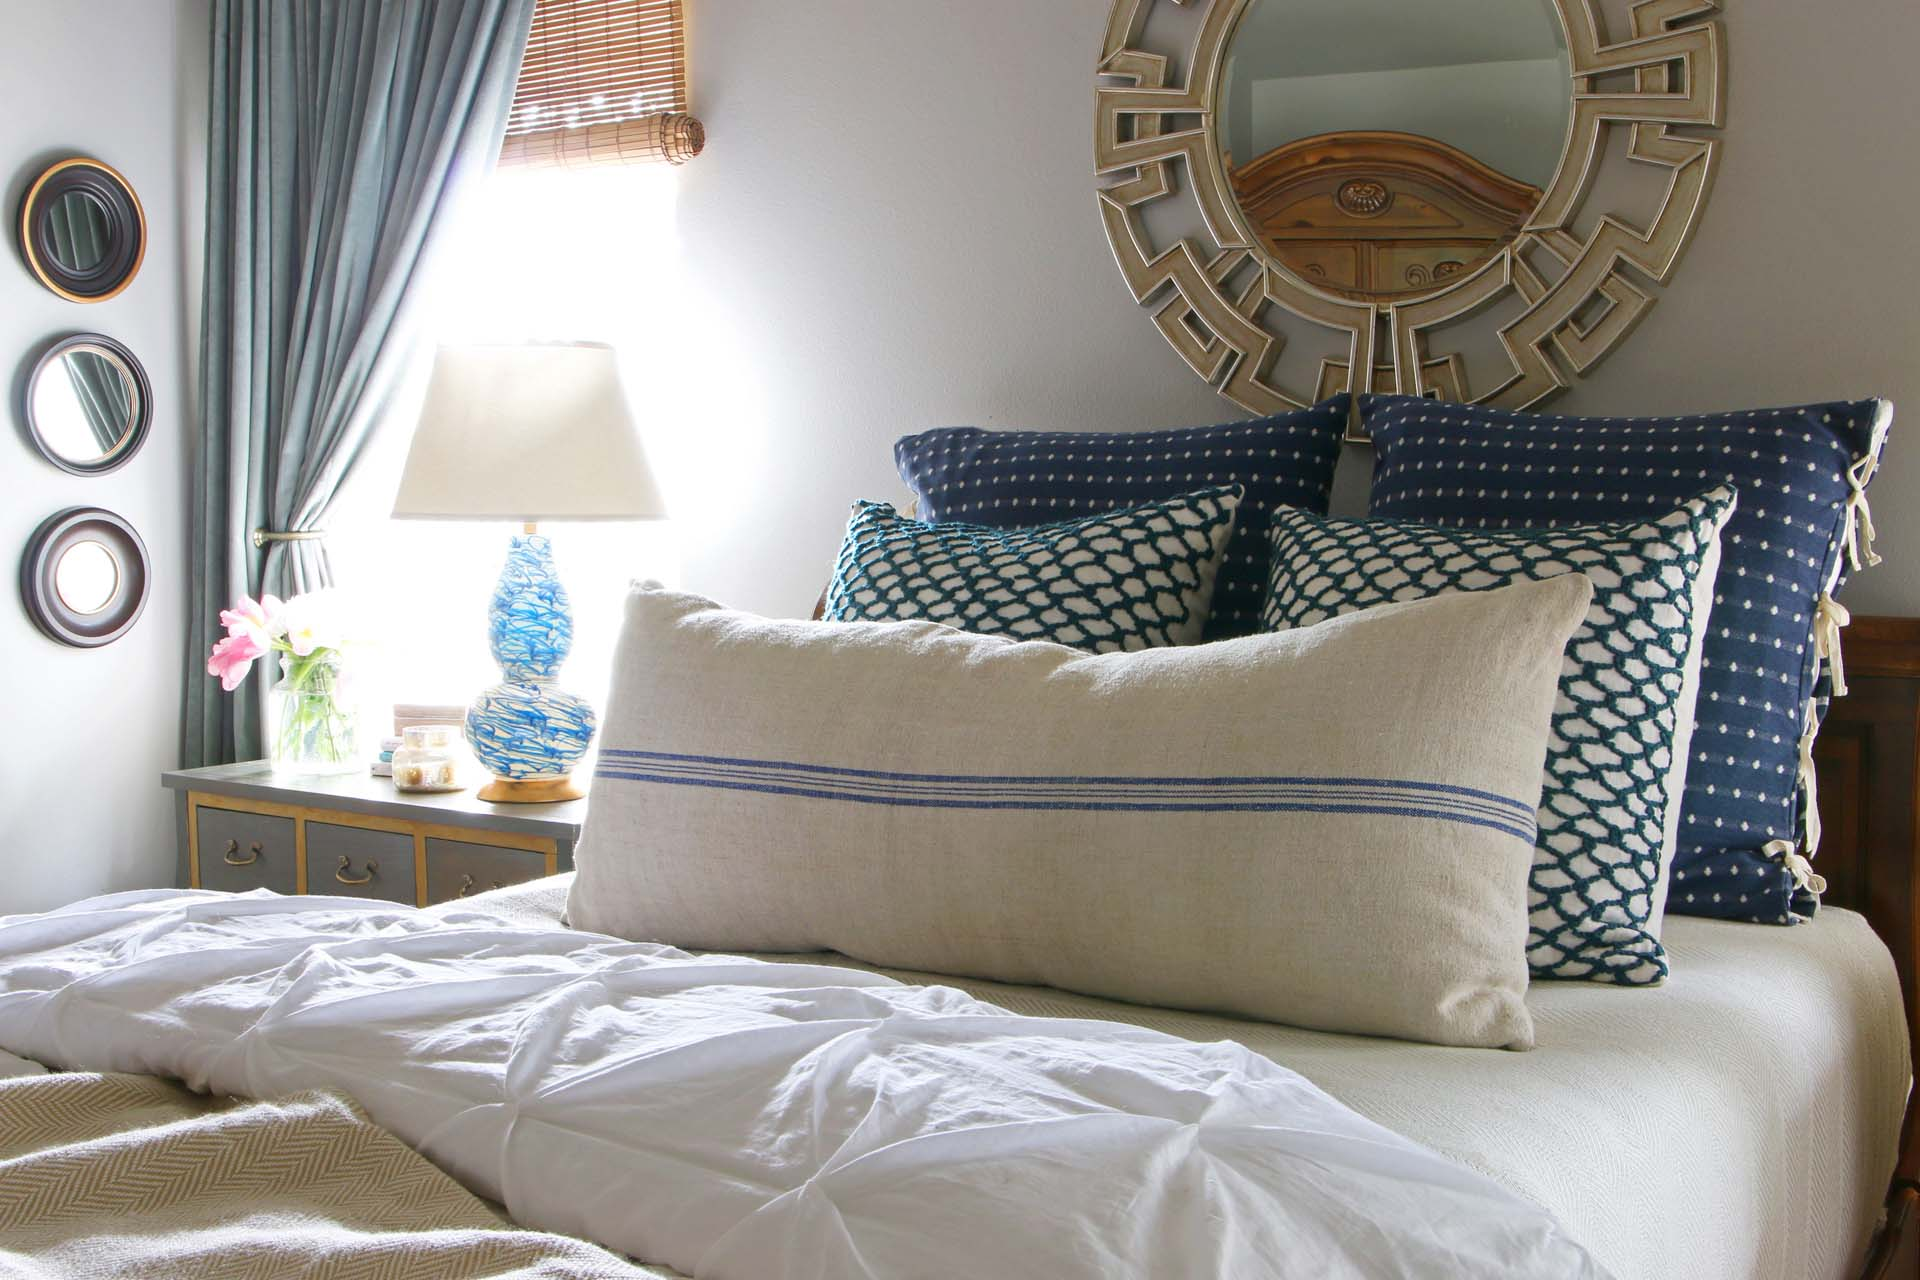 7 Steps to the Perfect Bedroom Makeover